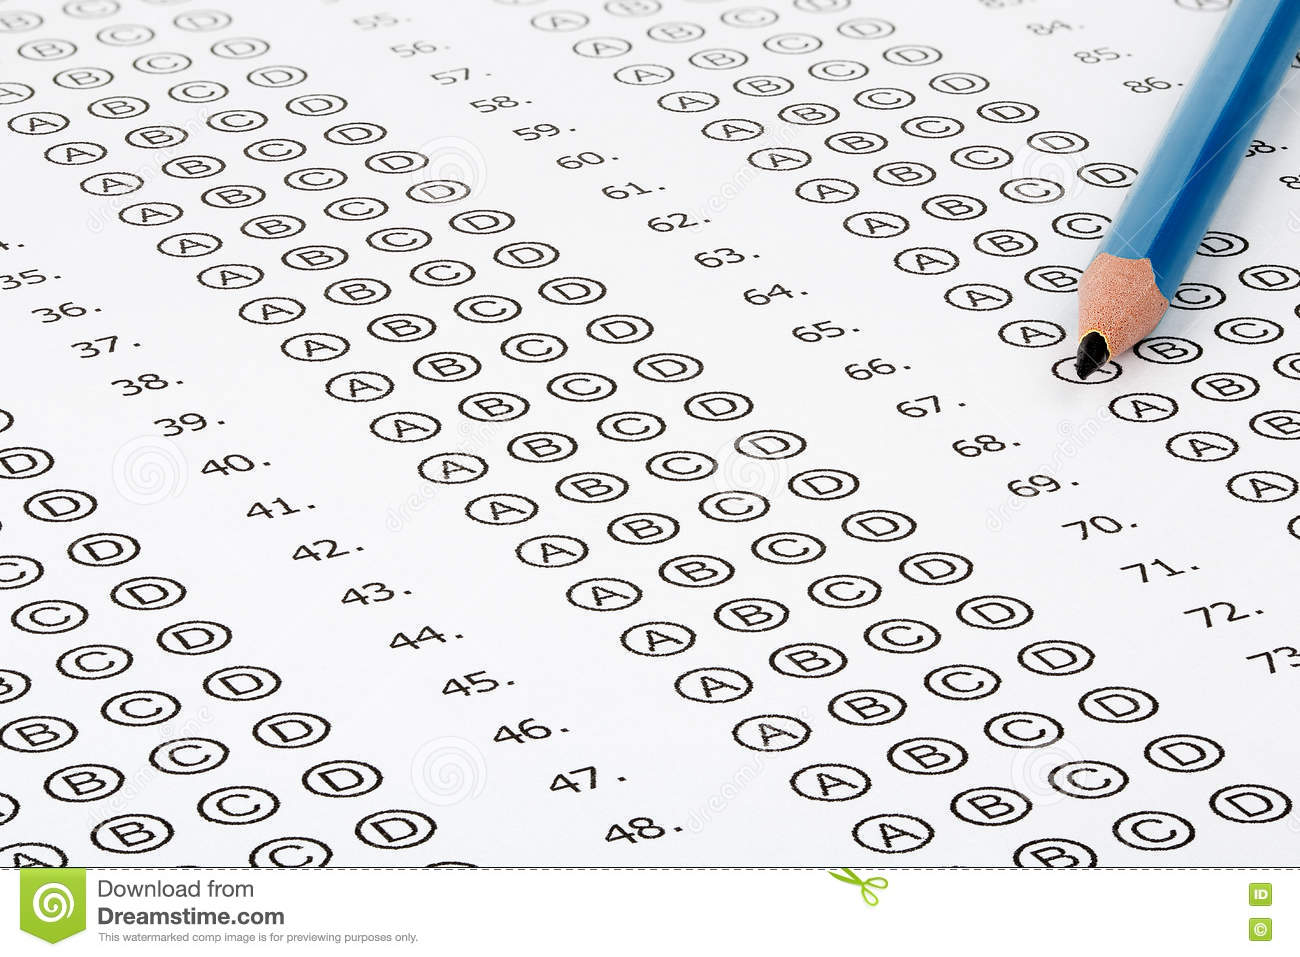 Multiple choice test stock photo. Image of college